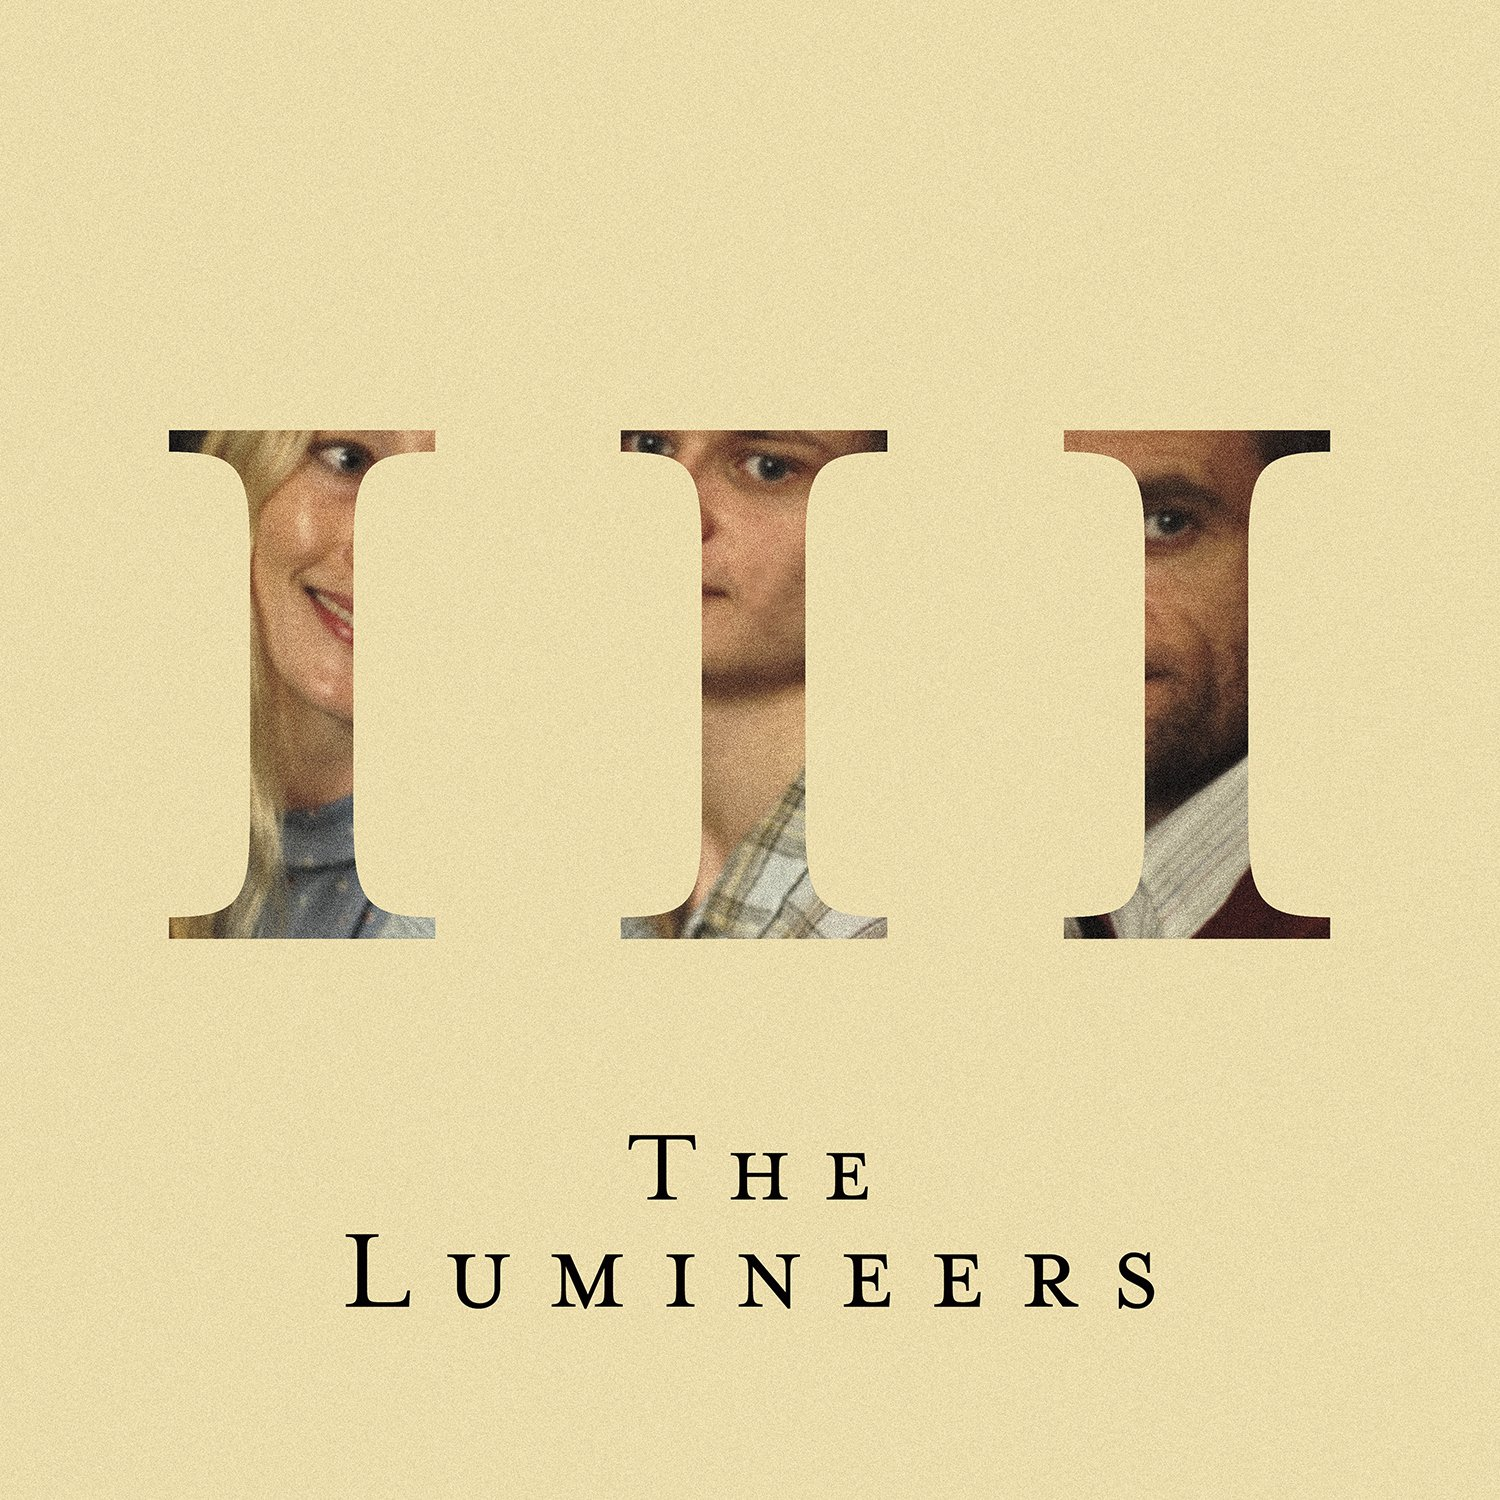 Review: The Lumineers create a stunning album in 'III'